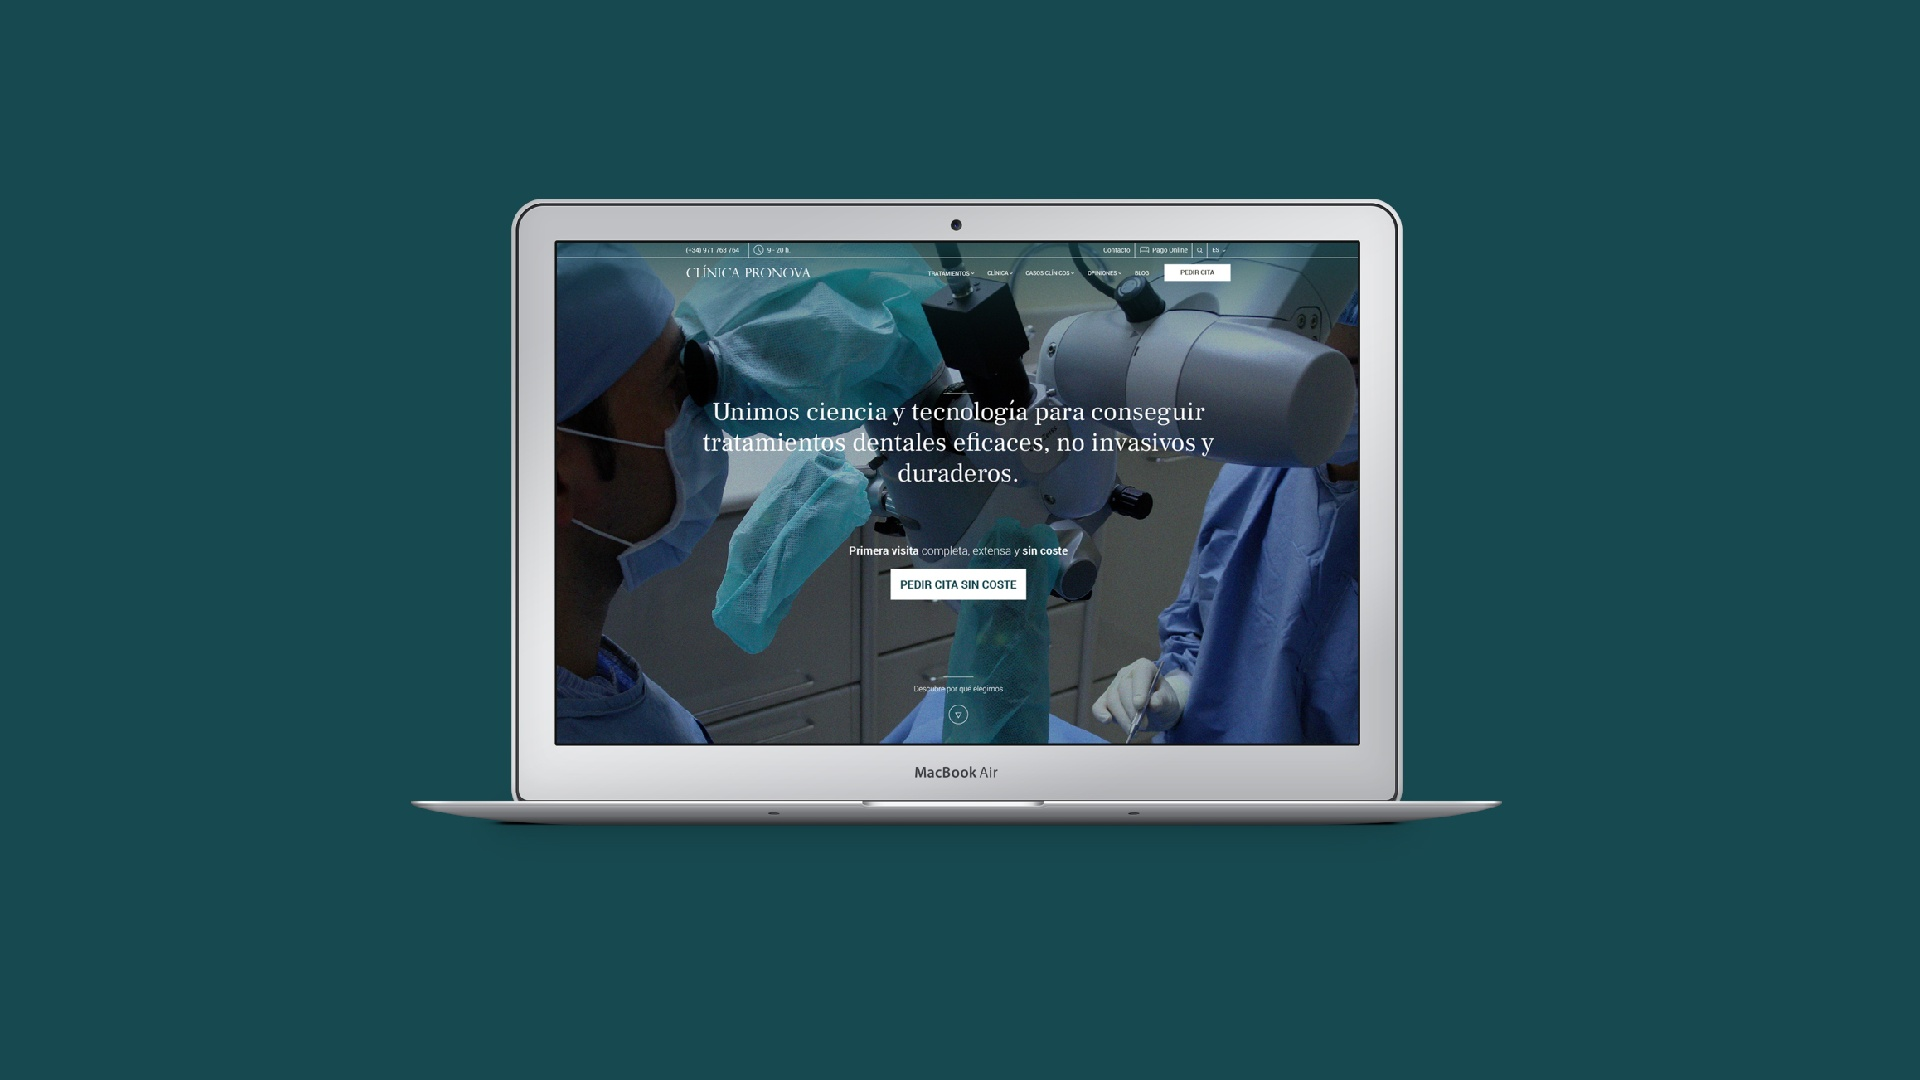 Clínica dental Pronova - Caso de éxito de Video Marketing